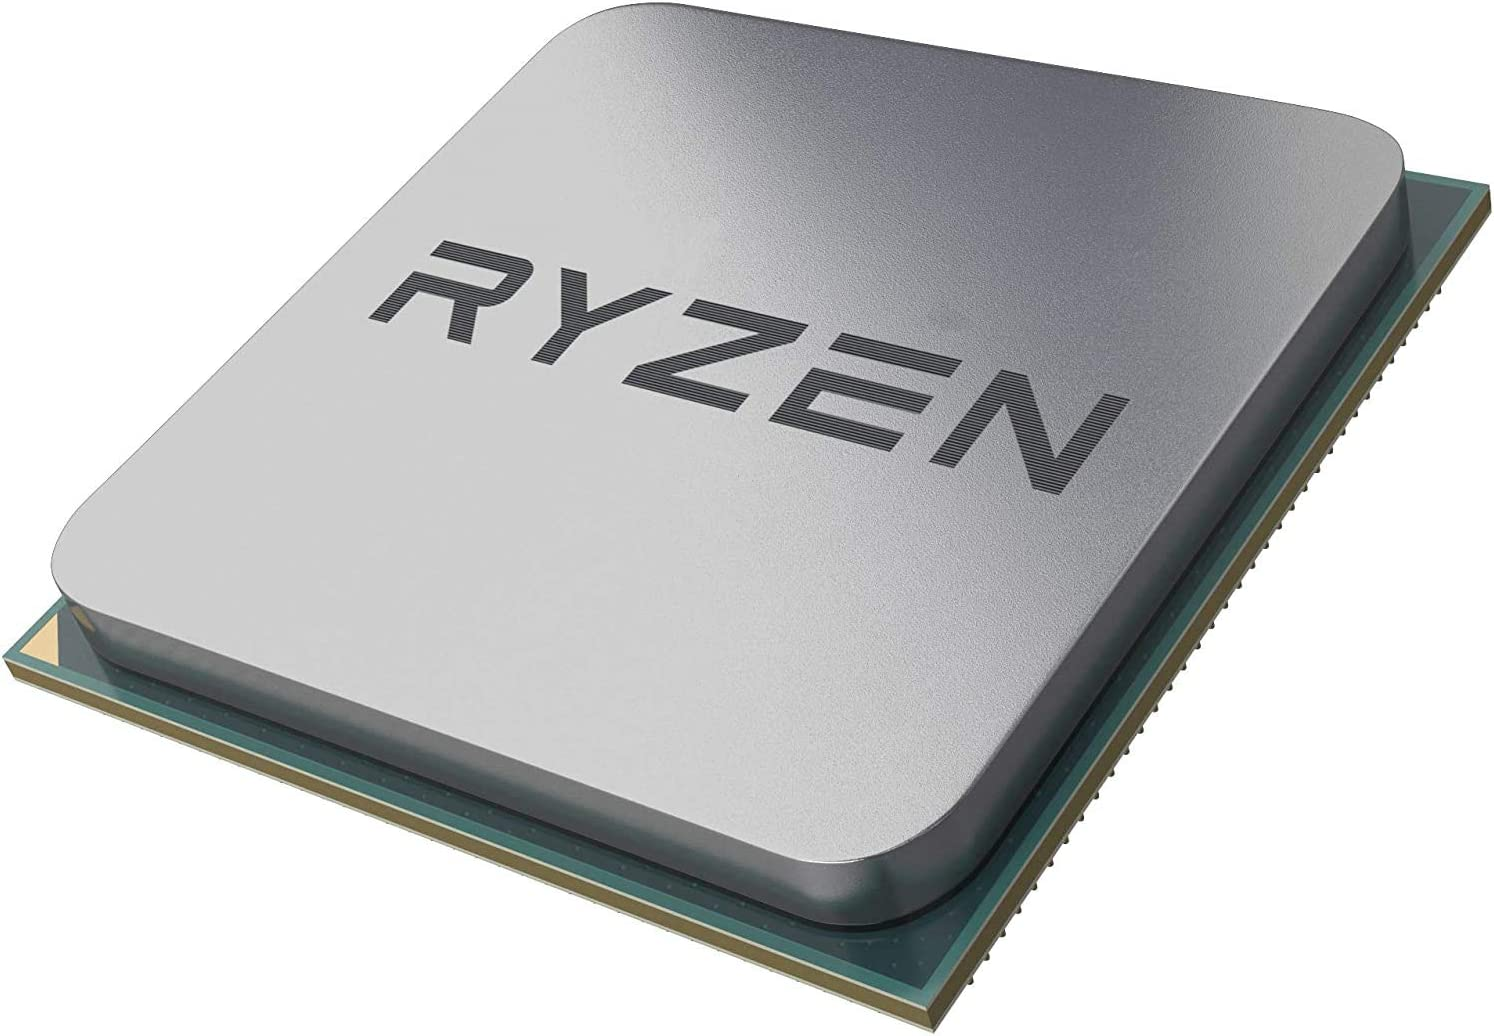 Processor for A M D Ryzen 9 3900X No Cooler 3.8Ghz, 12C//24T, 70 MB Cache, 4.6 GHz Max Boost CPU Only